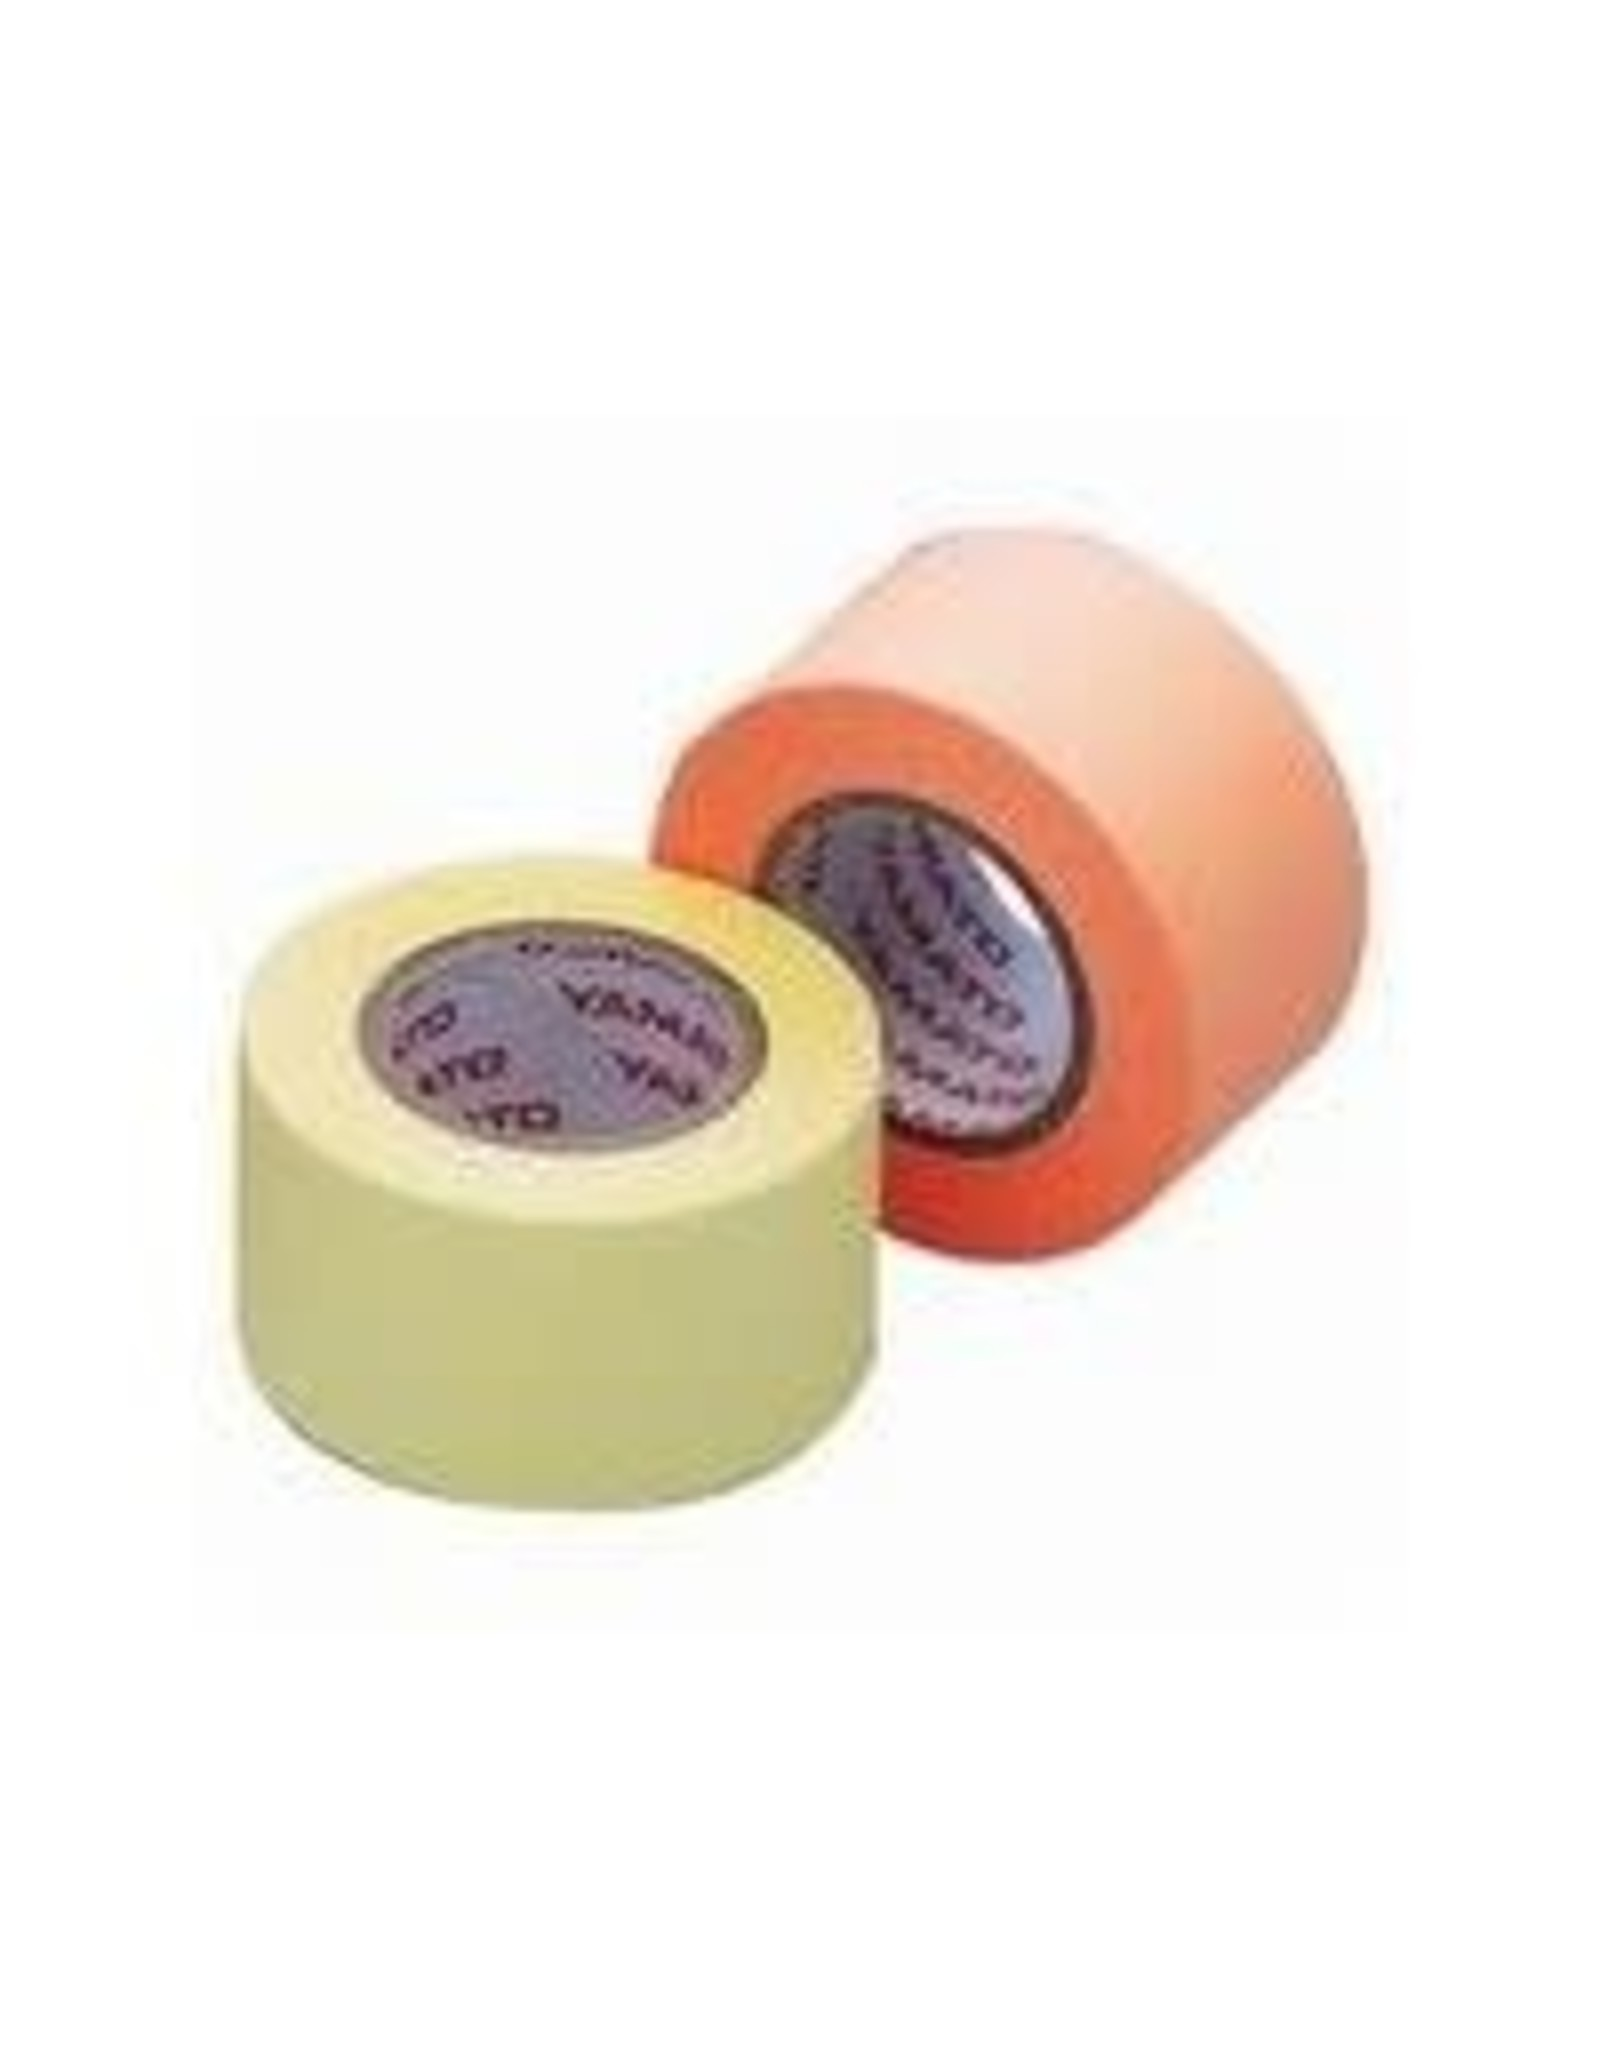 YAMATO CO., LTD MEMOC ROLL TAPE (LEMON/ORANGE) REFILL